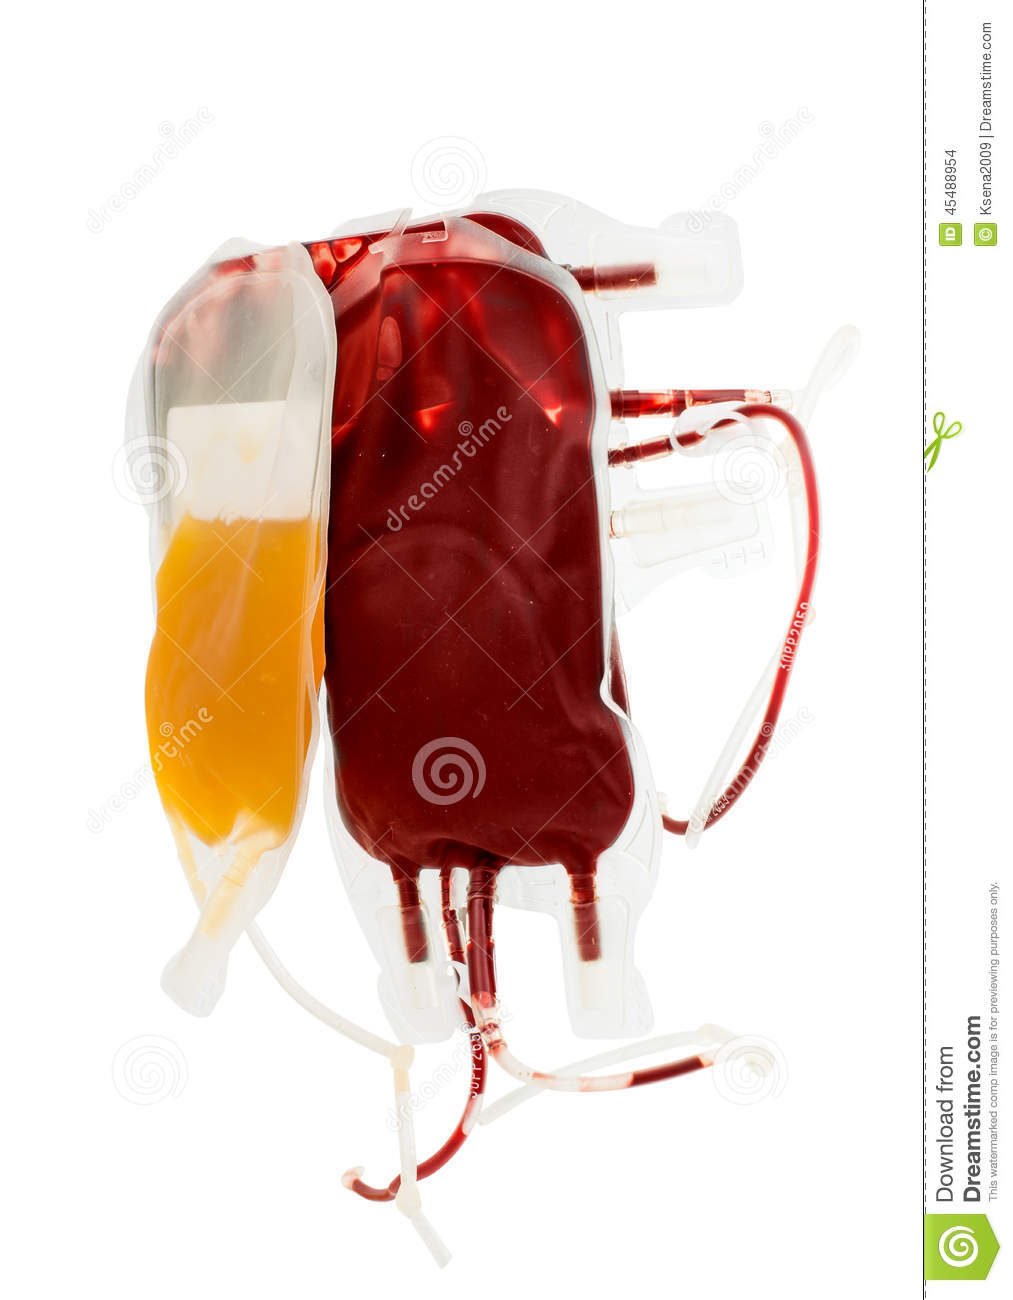 Bag Of Blood And Plasma On White Stock Photo - Image: 45488954